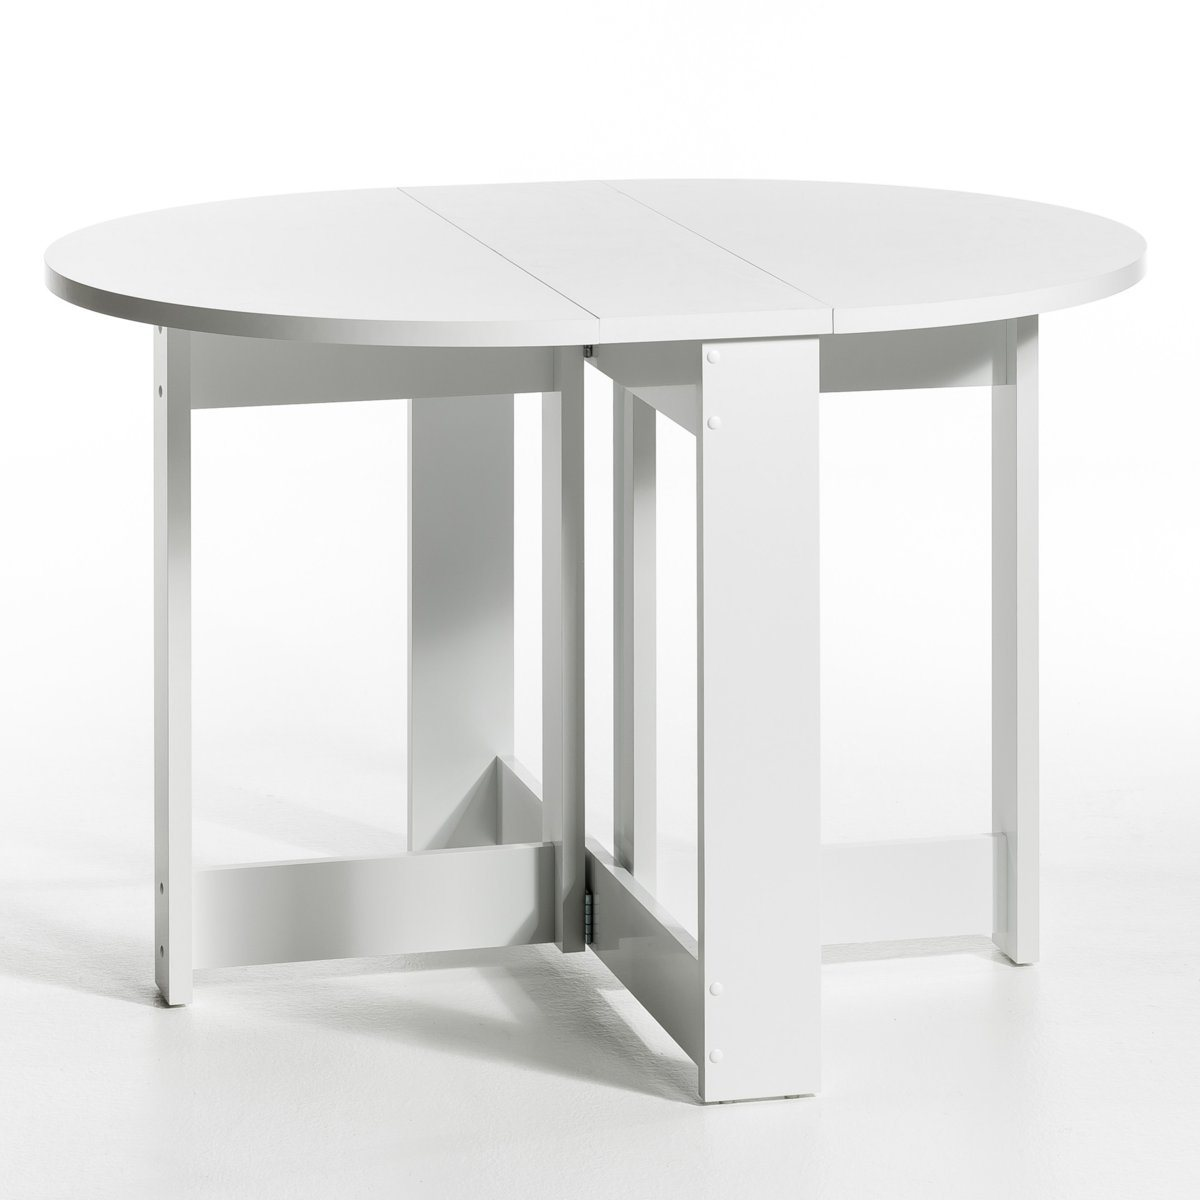 Table de jardin pliante ronde topiwall for Meuble cuisine table pliante